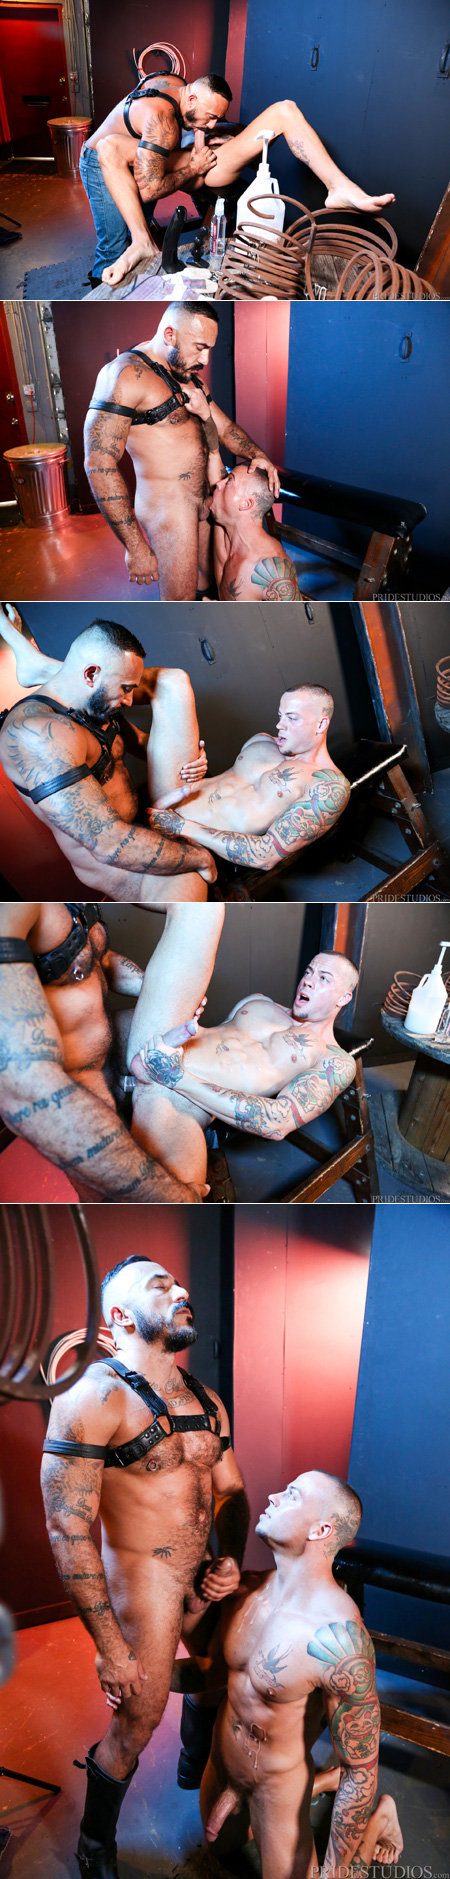 Tattooed muscle bottom taking progressively bigger toys in his ass until his Daddy fucks the cum out of him.